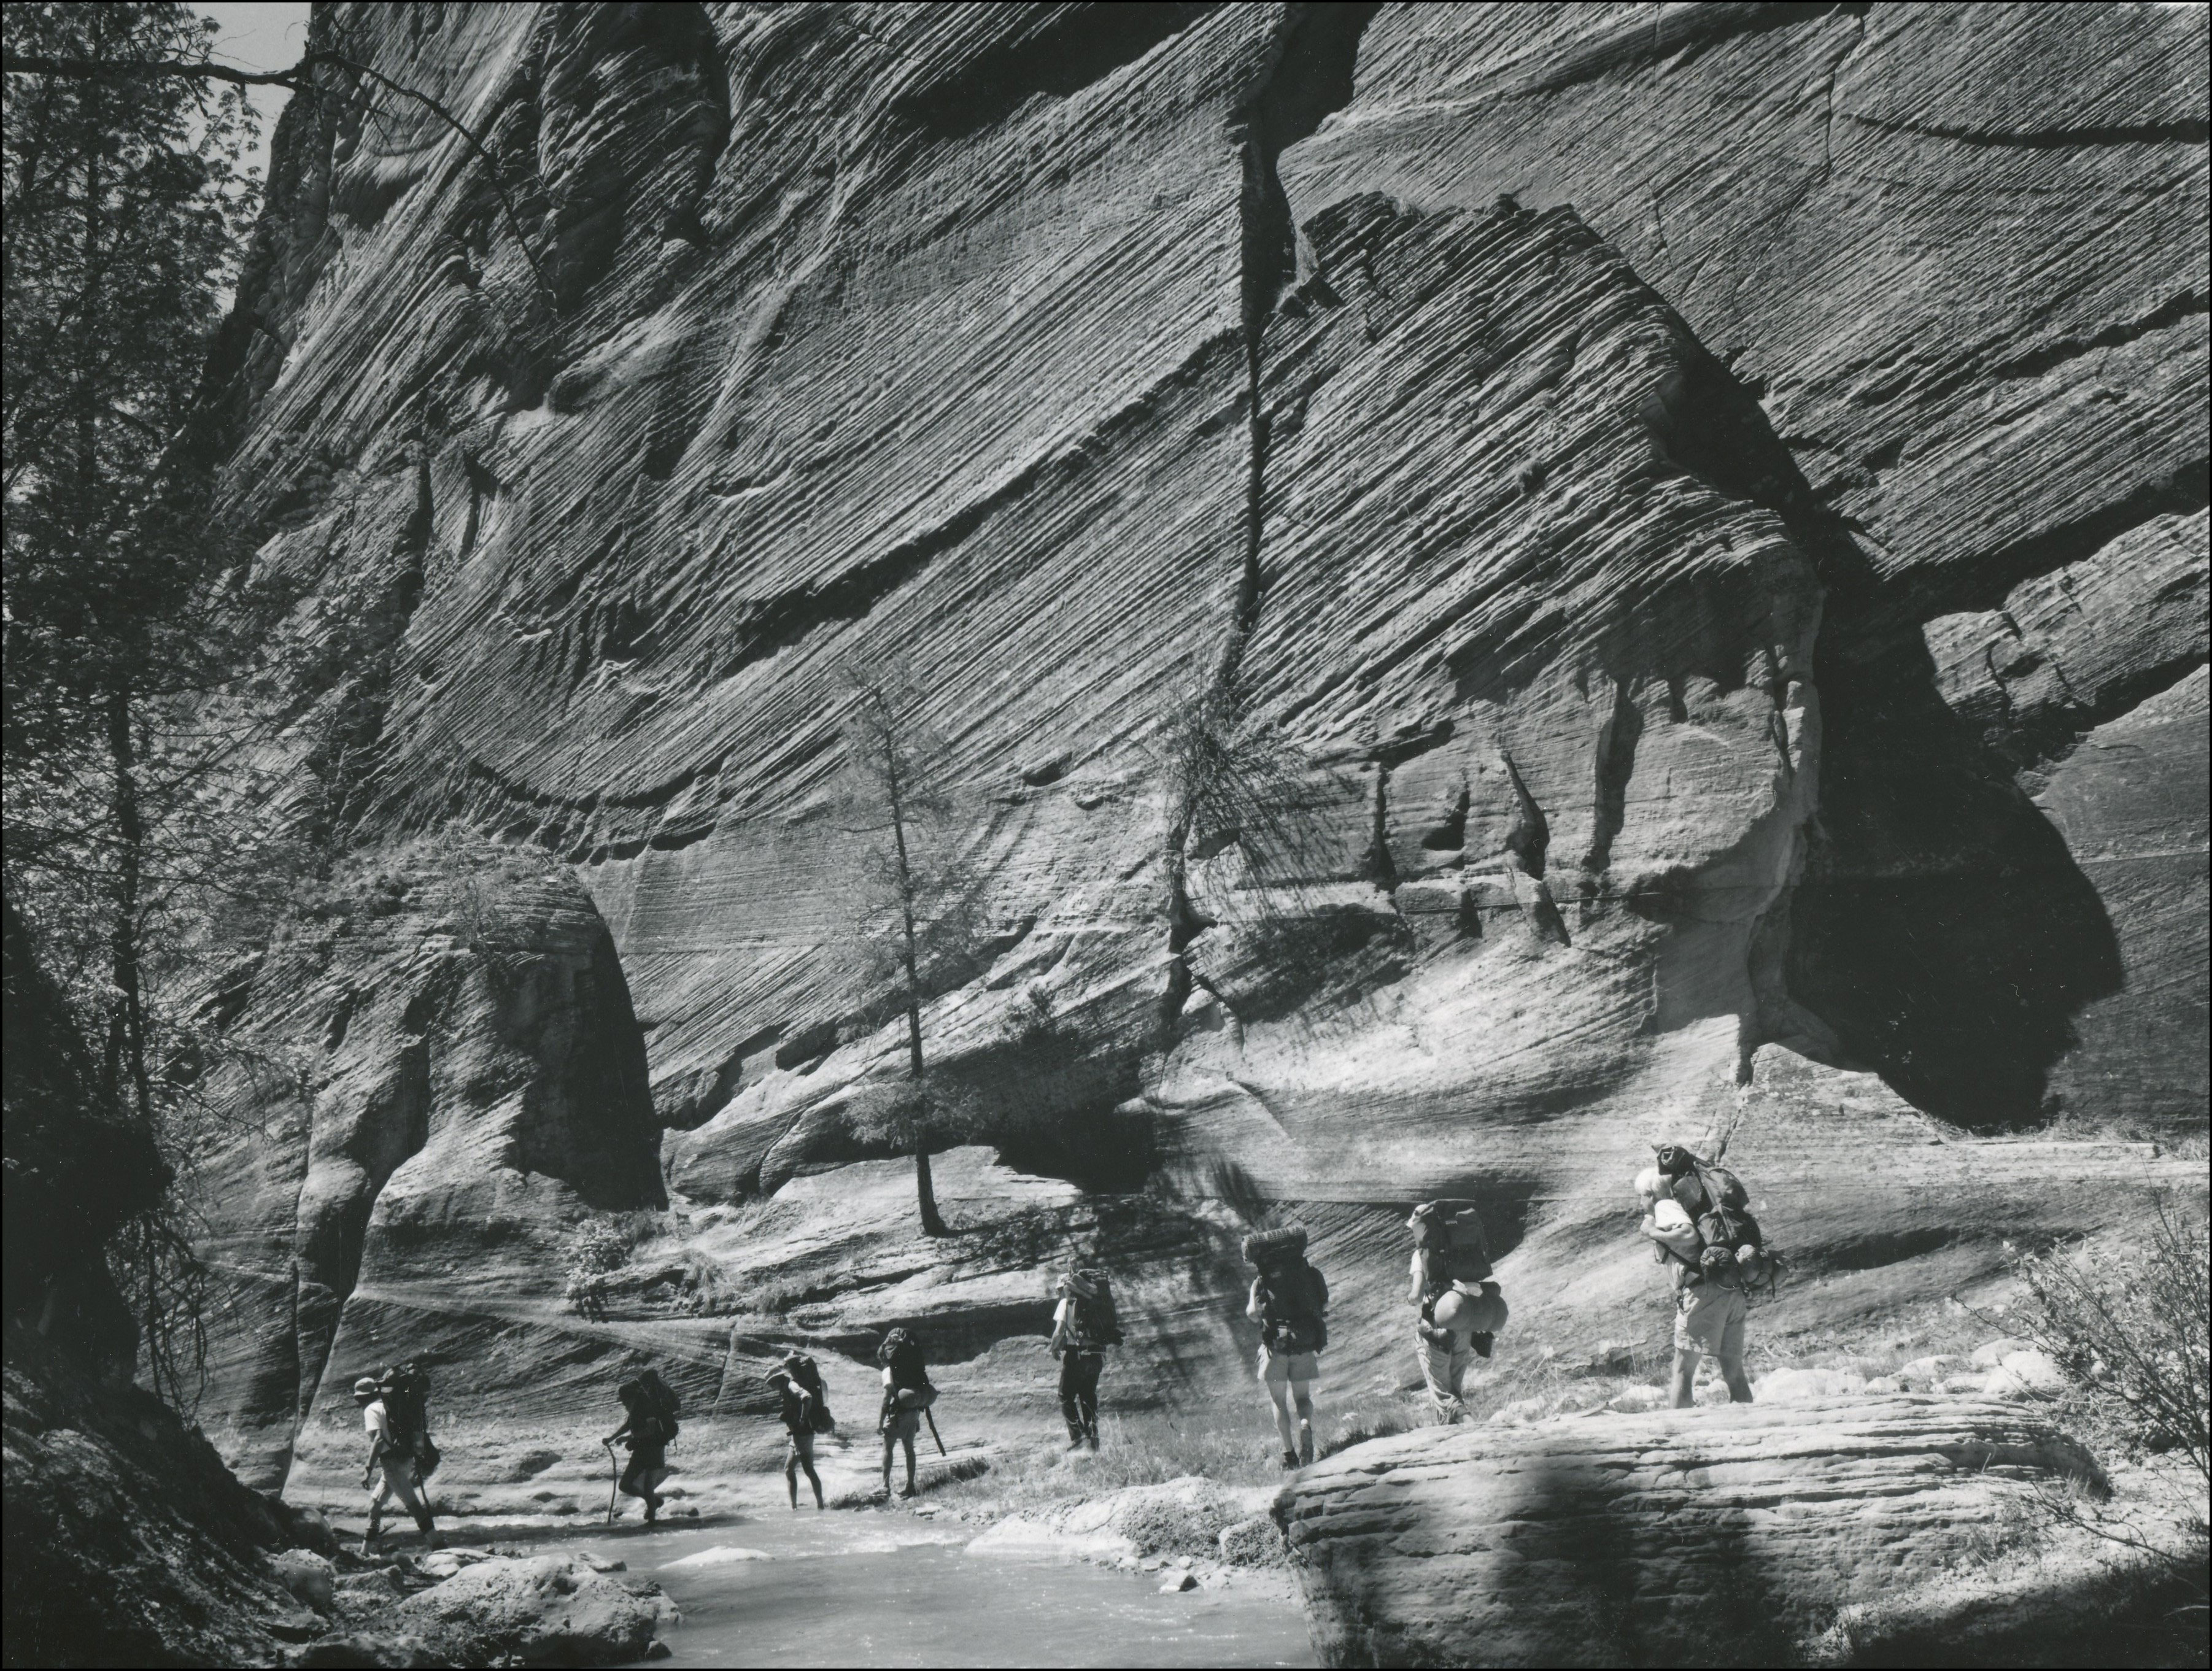 several people walking down a trail in single file at the bottom of tall rock ledges